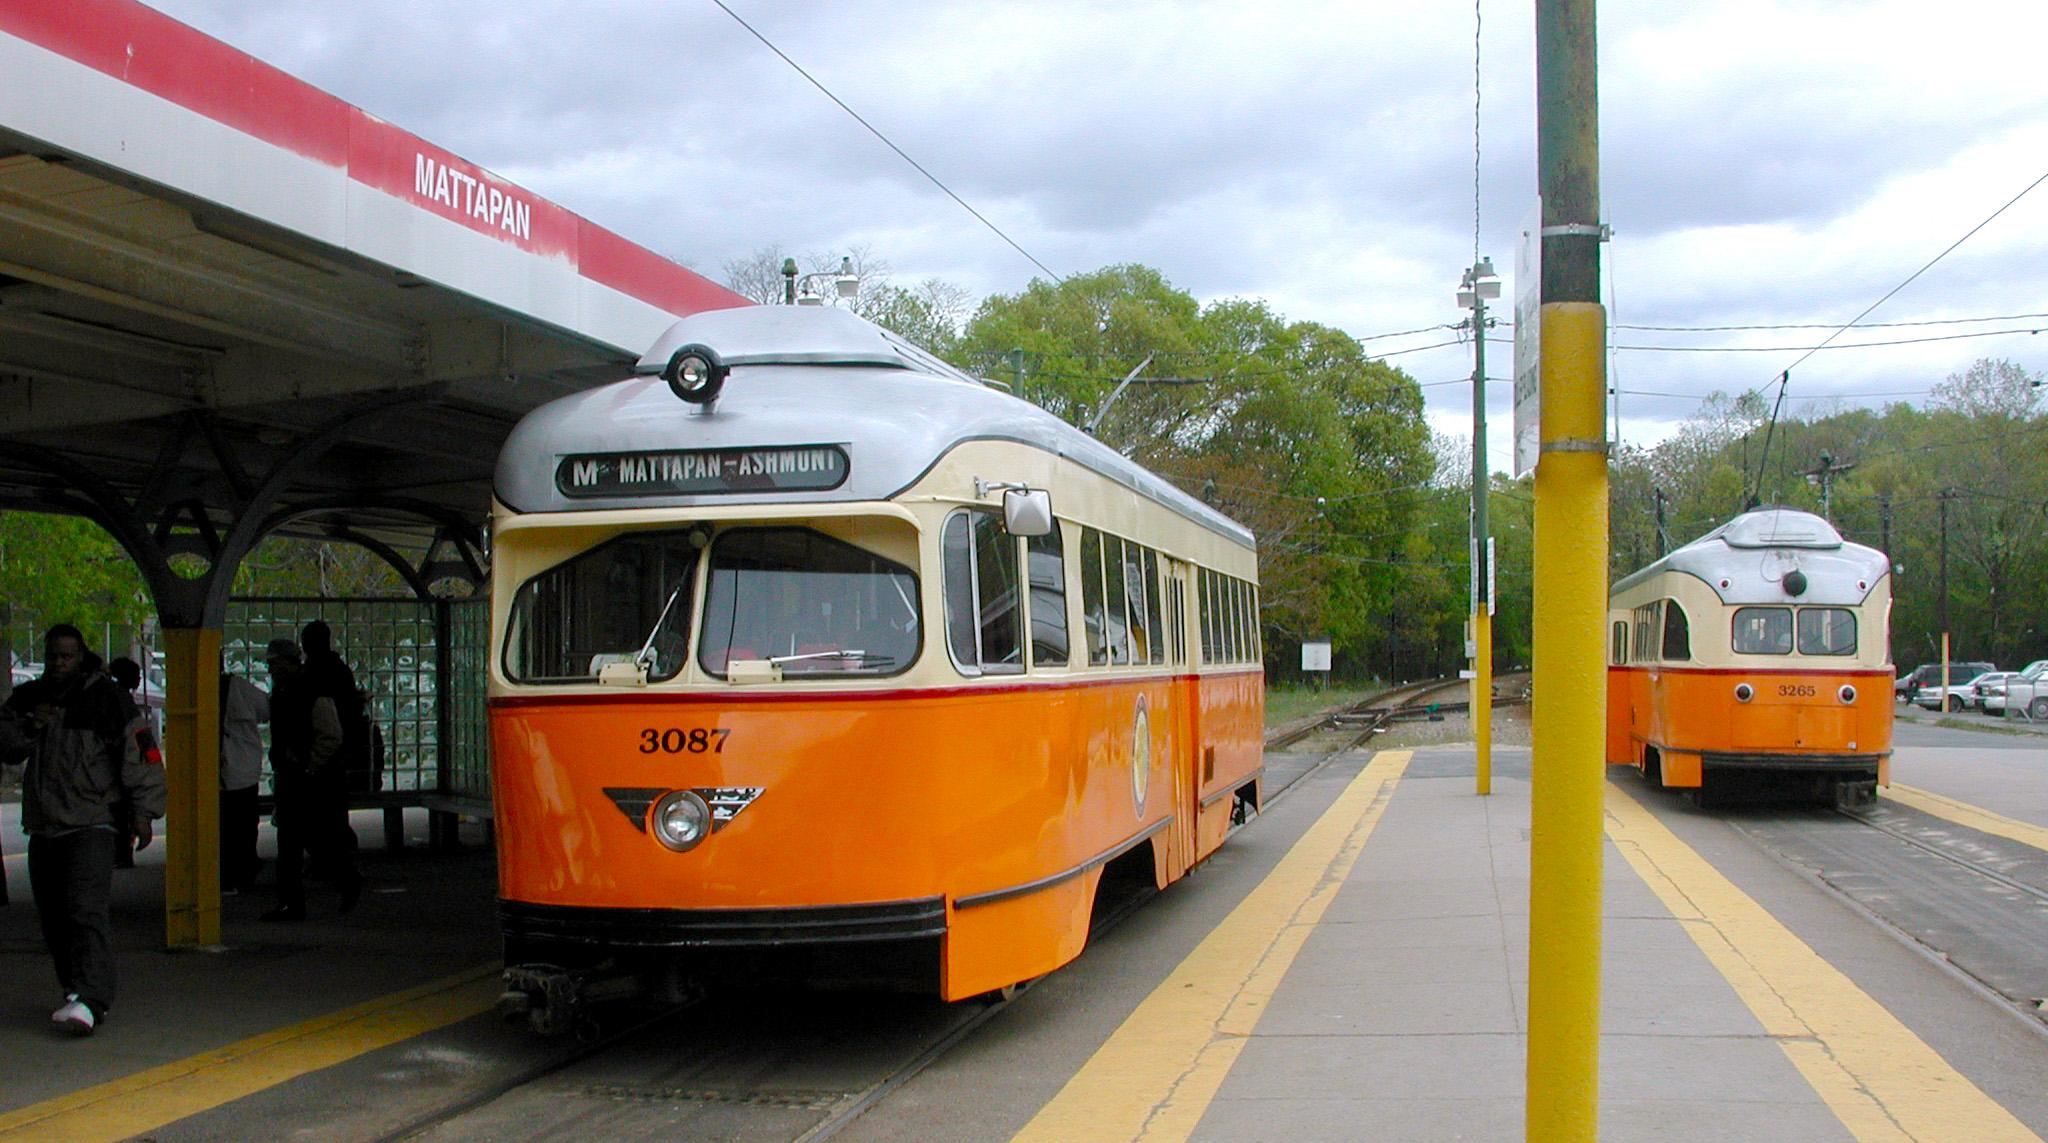 Two trolley cars at the Mattapan stop on the Mattapan Line